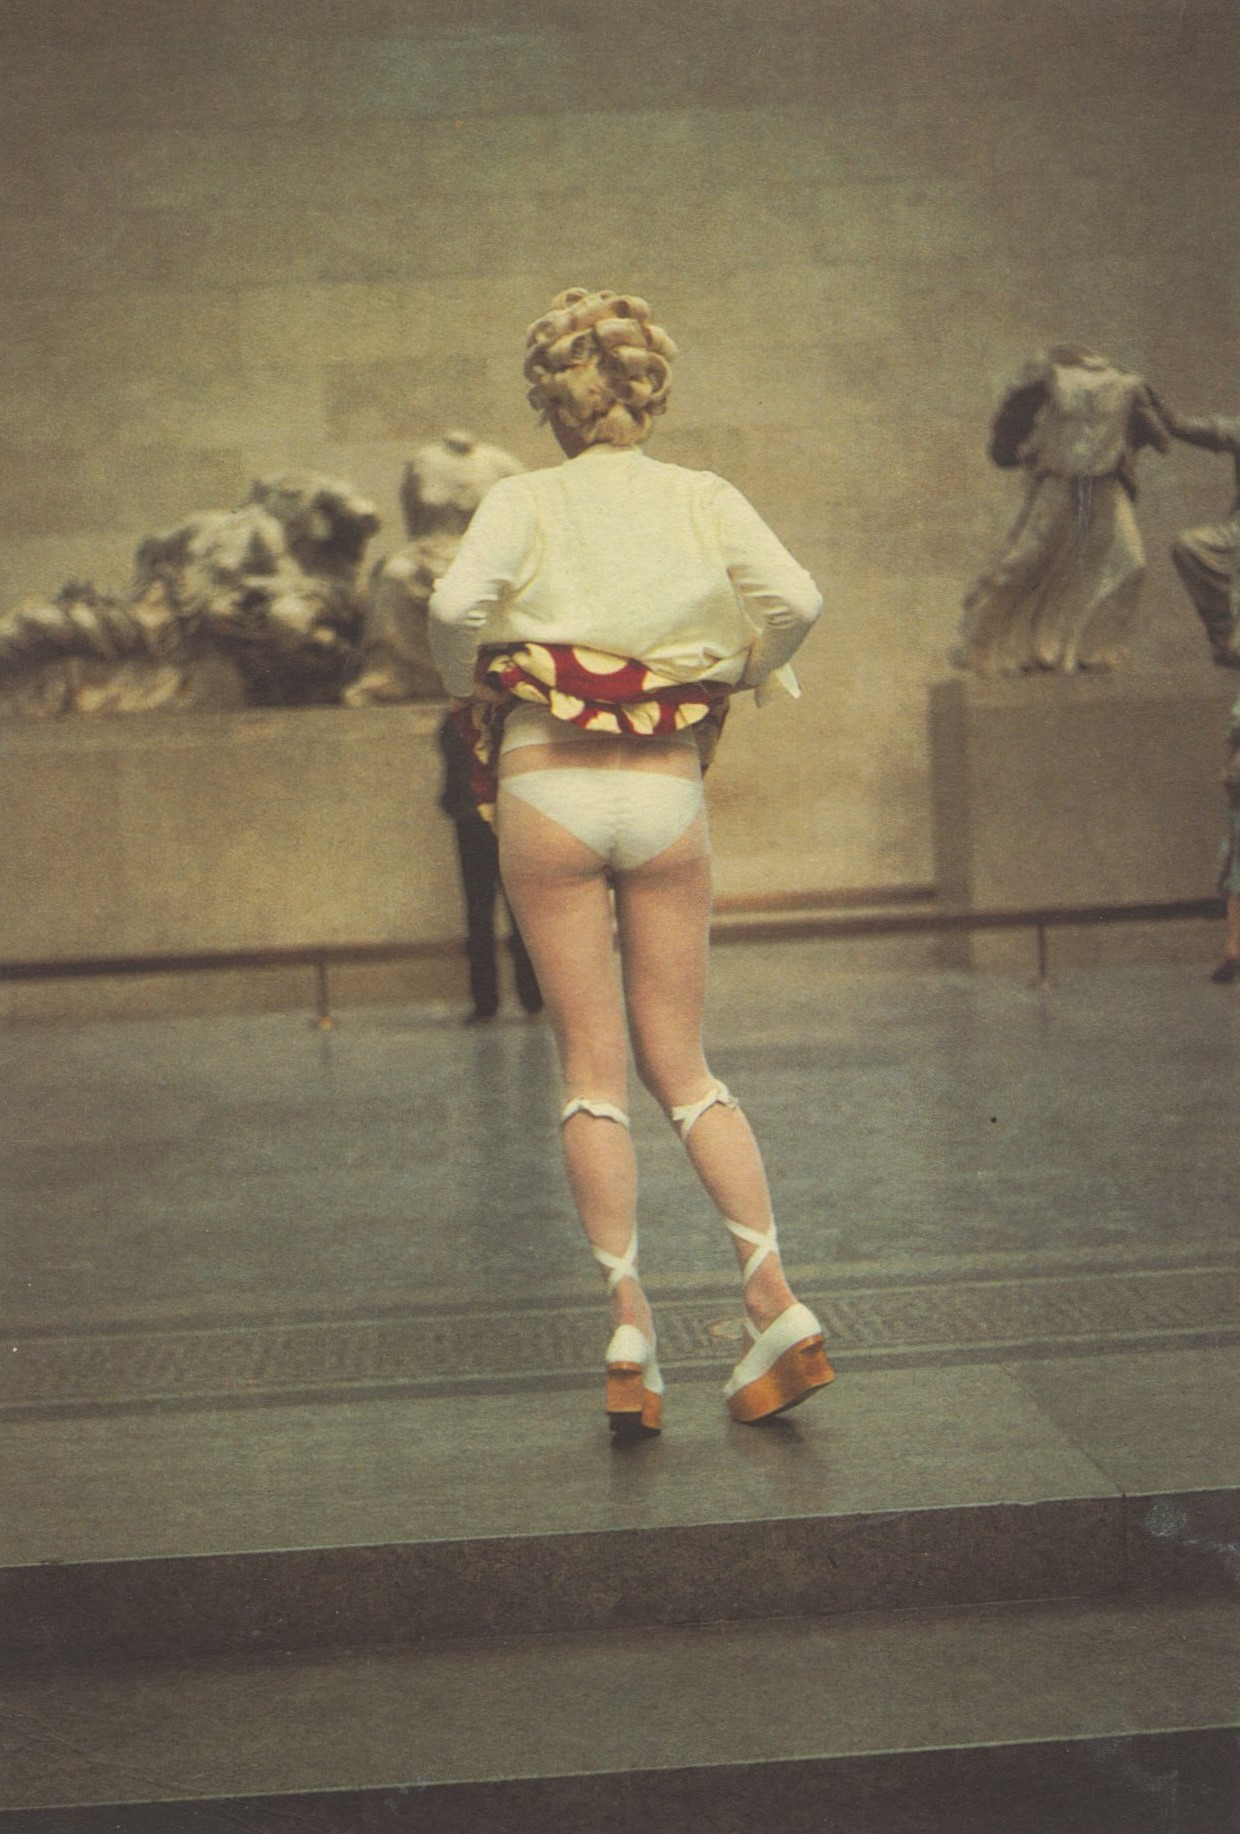 SARAH STOCKBRIDGE, BRITISH MUSEUM, VIVIENNE WESTWOOD MINI-CRINI COLLECTION, SPRING/SUMMER 1985, PHOTOGRAPHY DECLAN RYAN